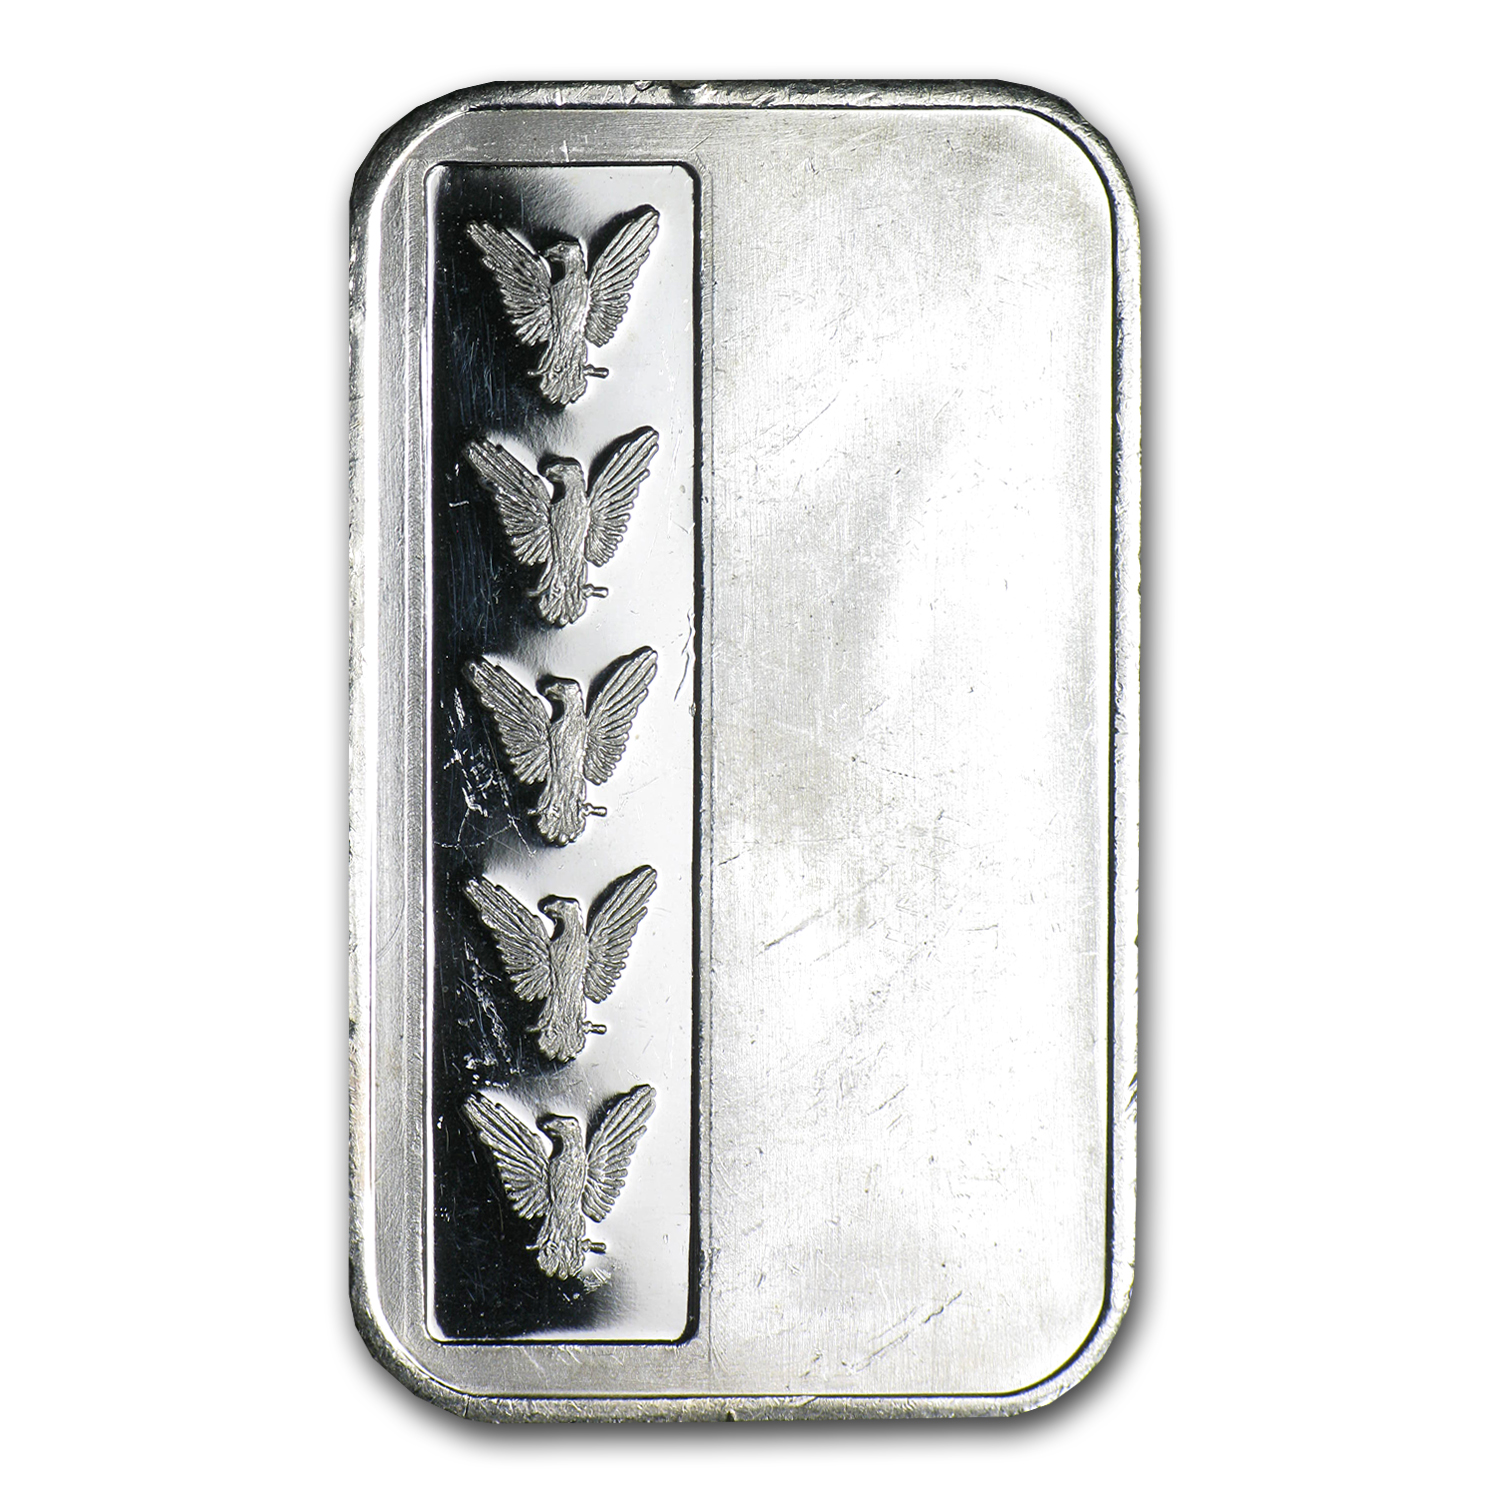 1/2 oz Silver Bar - Secondary Market